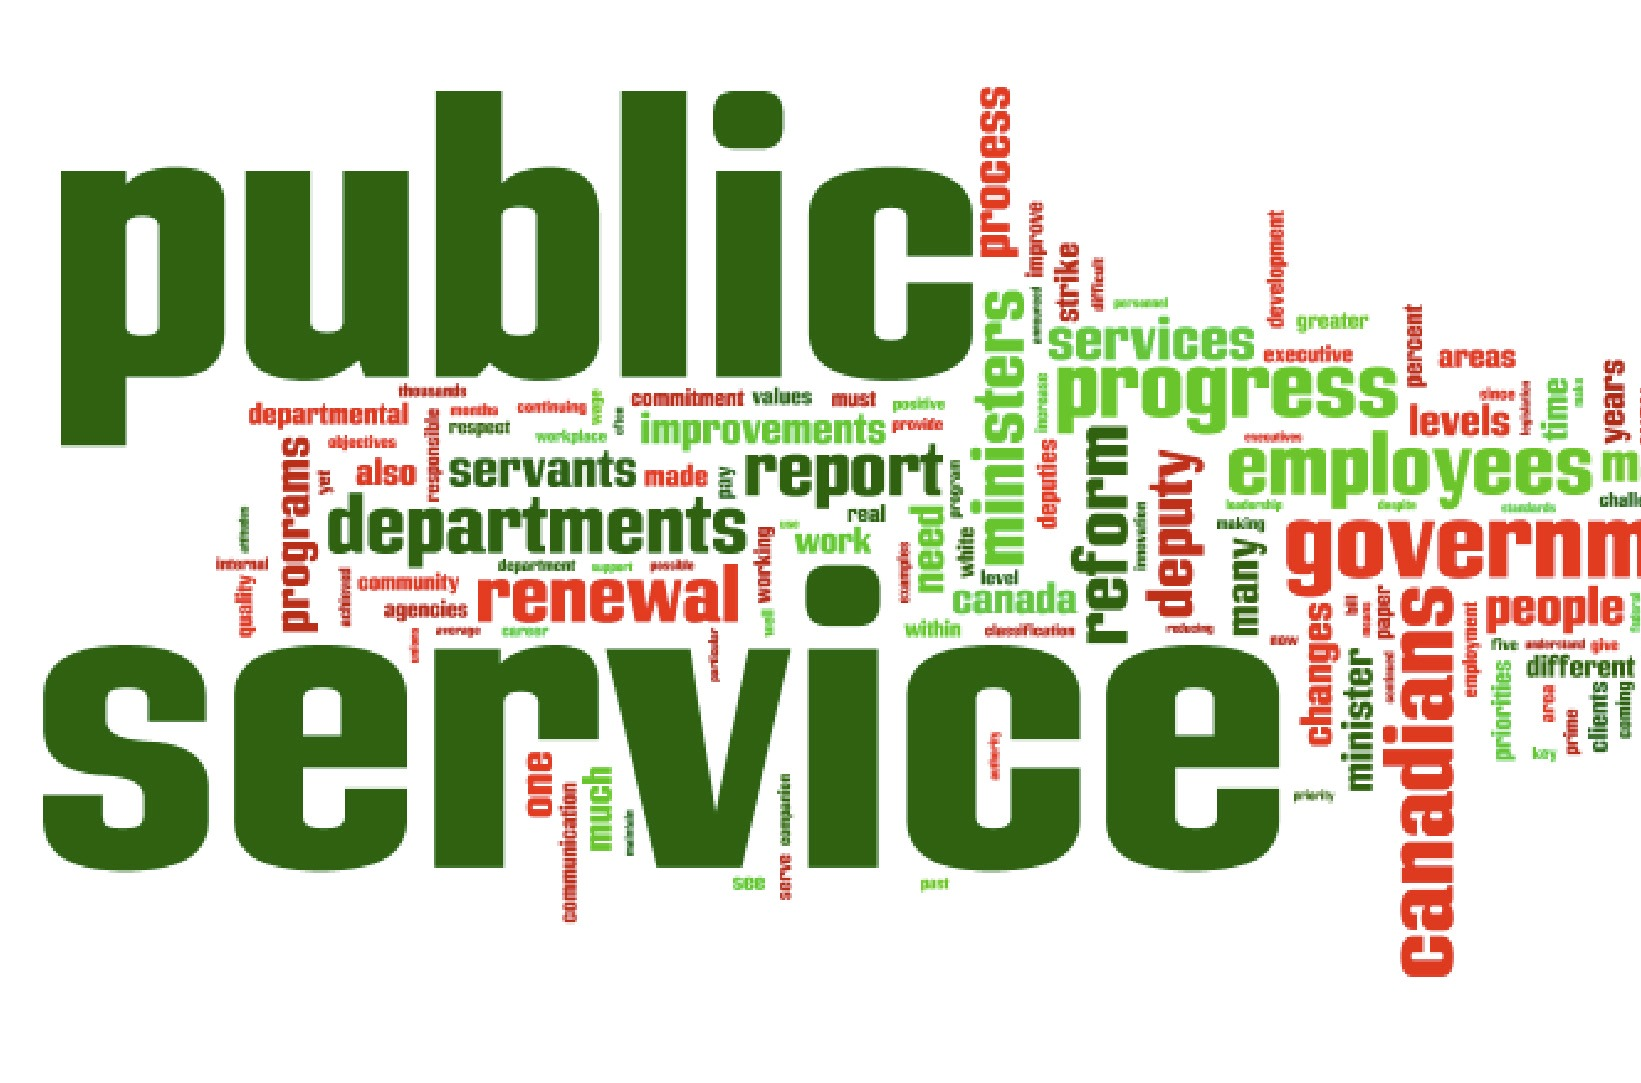 Essay on what public service means to me